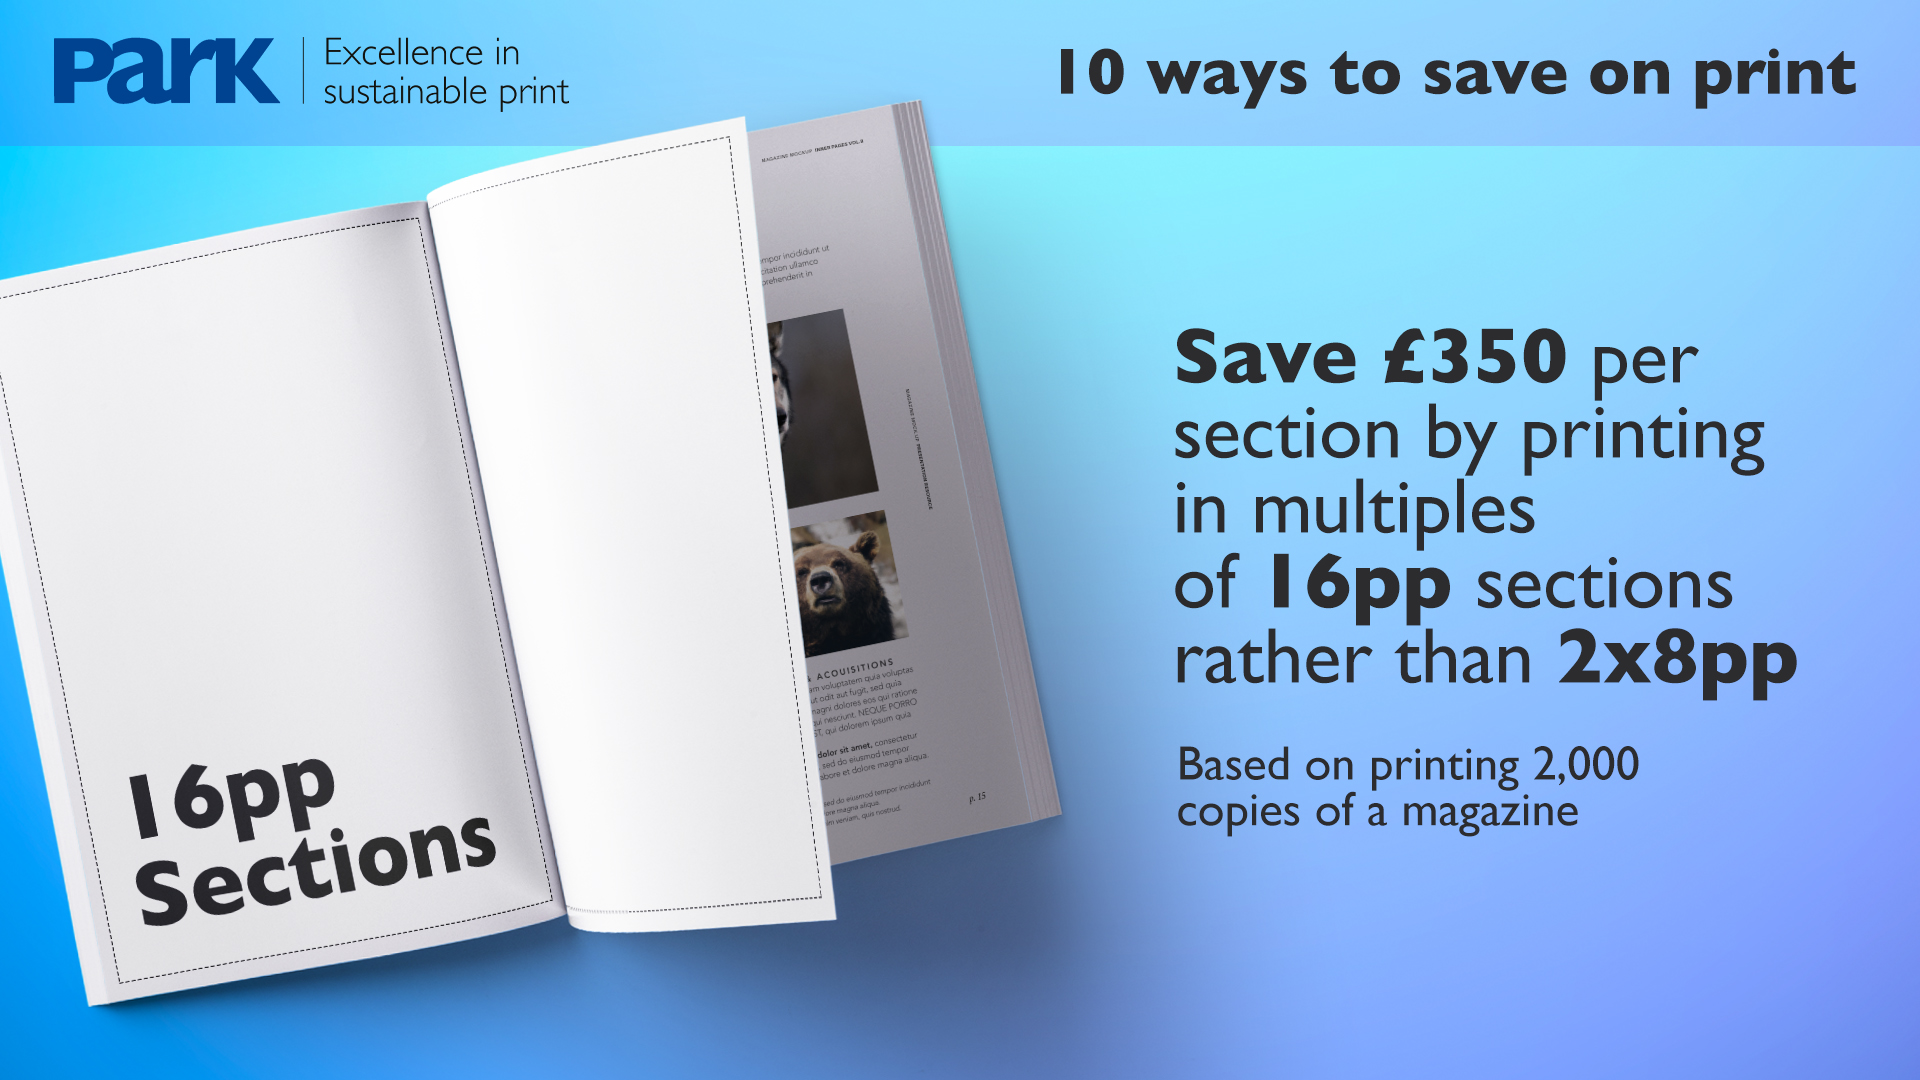 print in 16pp sections to reduce print costs